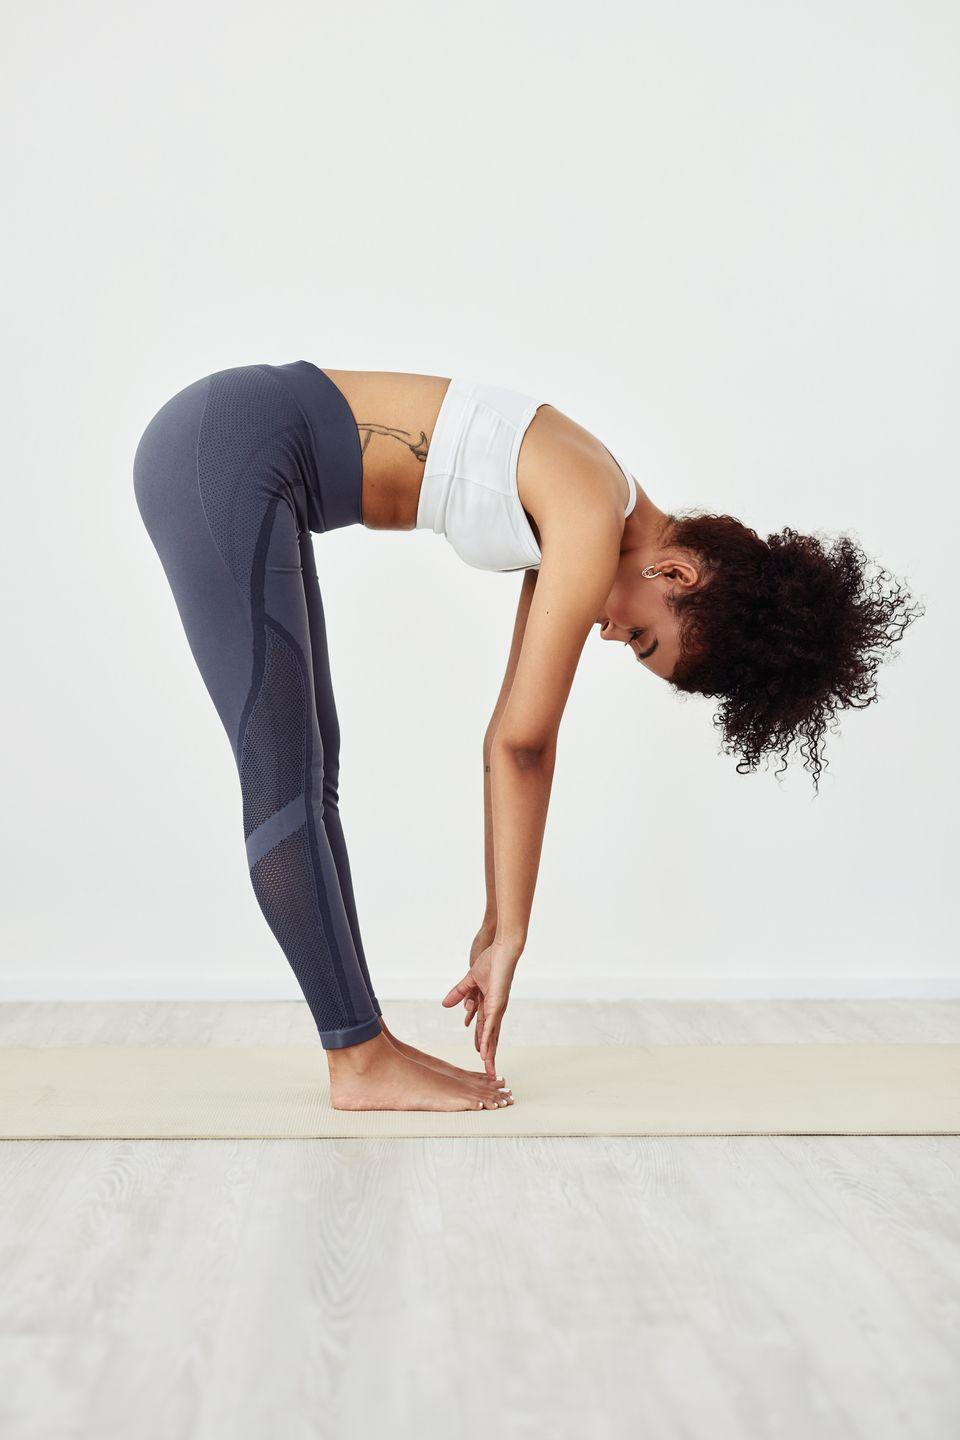 "<p>Yoga is an easy way to start your day on a refreshing note. Find an online class — you could try <a href=""https://www.youtube.com/"" rel=""nofollow noopener"" target=""_blank"" data-ylk=""slk:YouTube"" class=""link rapid-noclick-resp"">YouTube</a> for a free flow or head to <a href=""https://www.eventbrite.com/d/online/new-year%27s-eve-yoga/?q=new+year%27s+eve+yoga"" rel=""nofollow noopener"" target=""_blank"" data-ylk=""slk:Eventbrite"" class=""link rapid-noclick-resp"">Eventbrite</a> for a NYE-themed class — or download a <a href=""https://www.goodhousekeeping.com/health-products/g26950282/best-yoga-apps/"" rel=""nofollow noopener"" target=""_blank"" data-ylk=""slk:top-rated yoga app"" class=""link rapid-noclick-resp"">top-rated yoga app</a>. Then, pull out your mat and get moving. Try a vinyasa practice for something firey and fast or a yin yoga practice for something slow and relaxing. </p>"